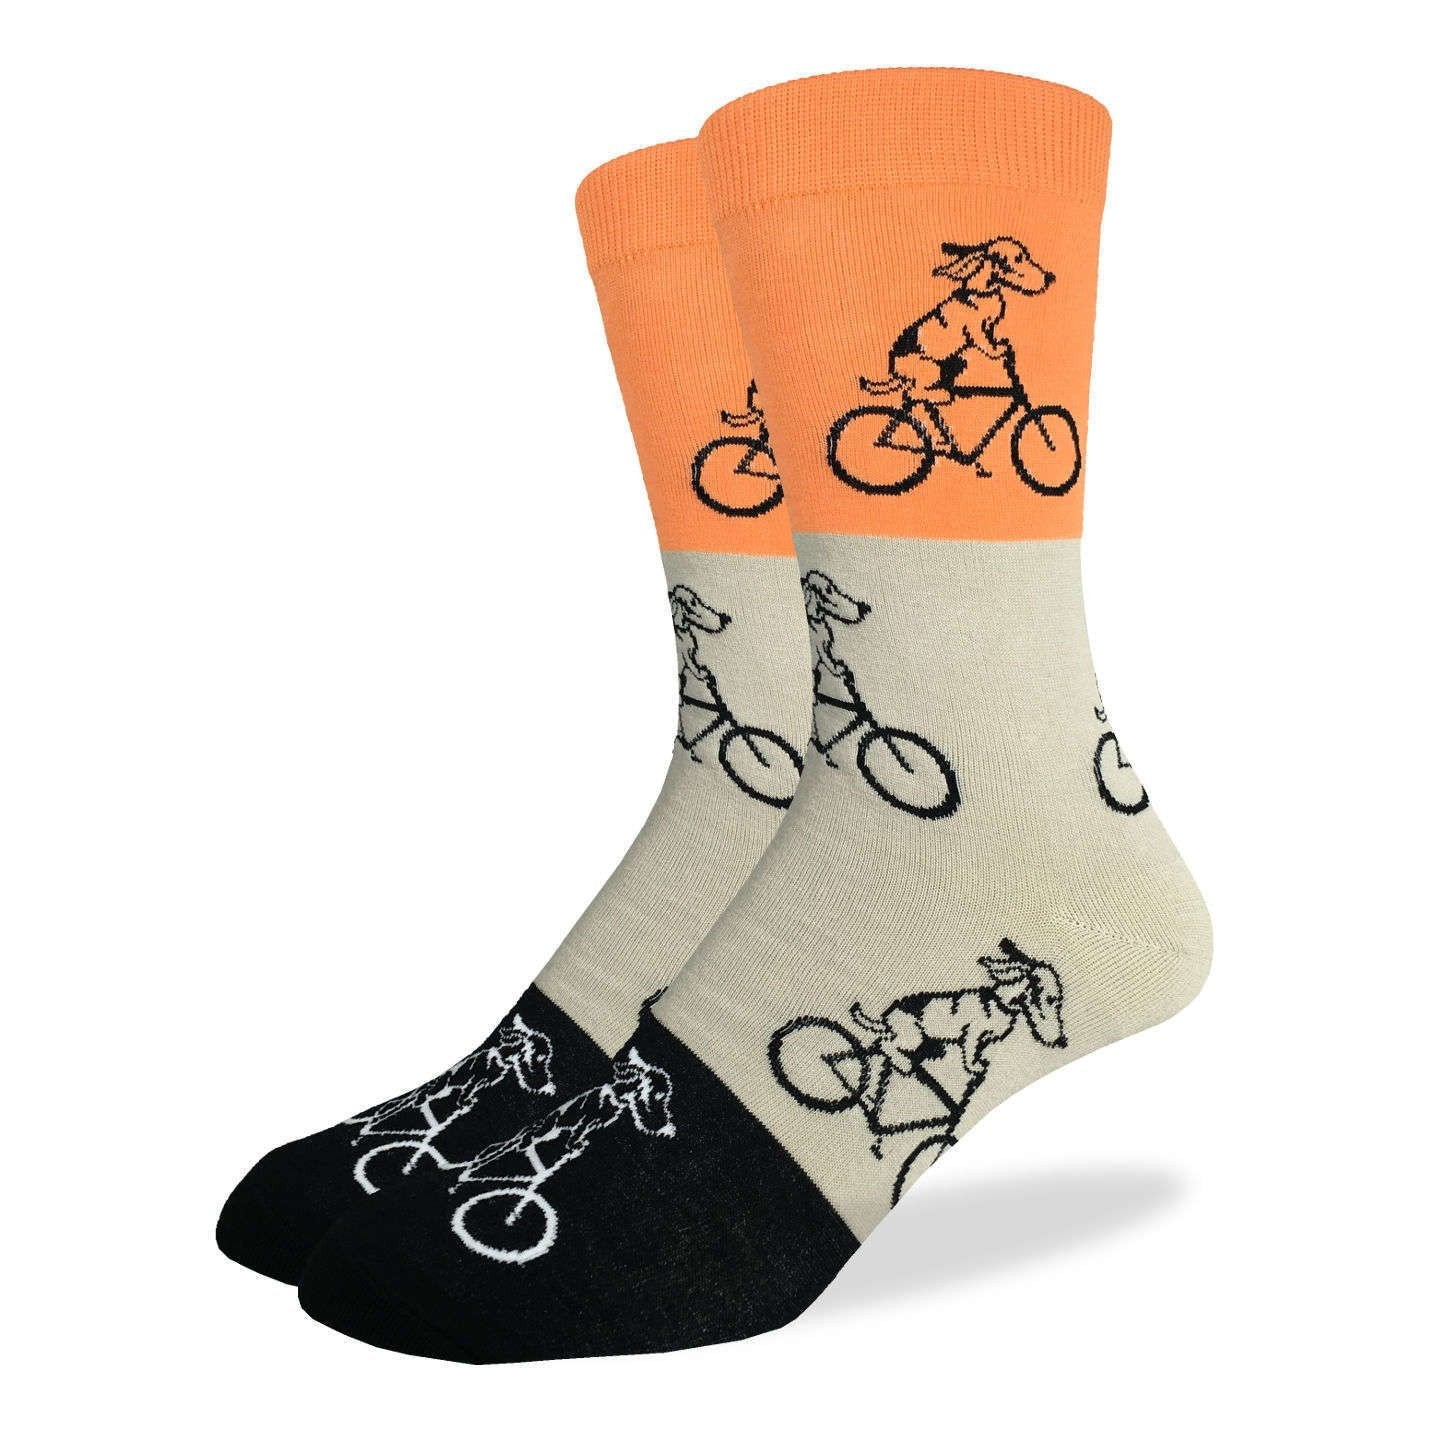 Men's King Size Orange Dogs Riding Bikes Socks - Good Luck Sock